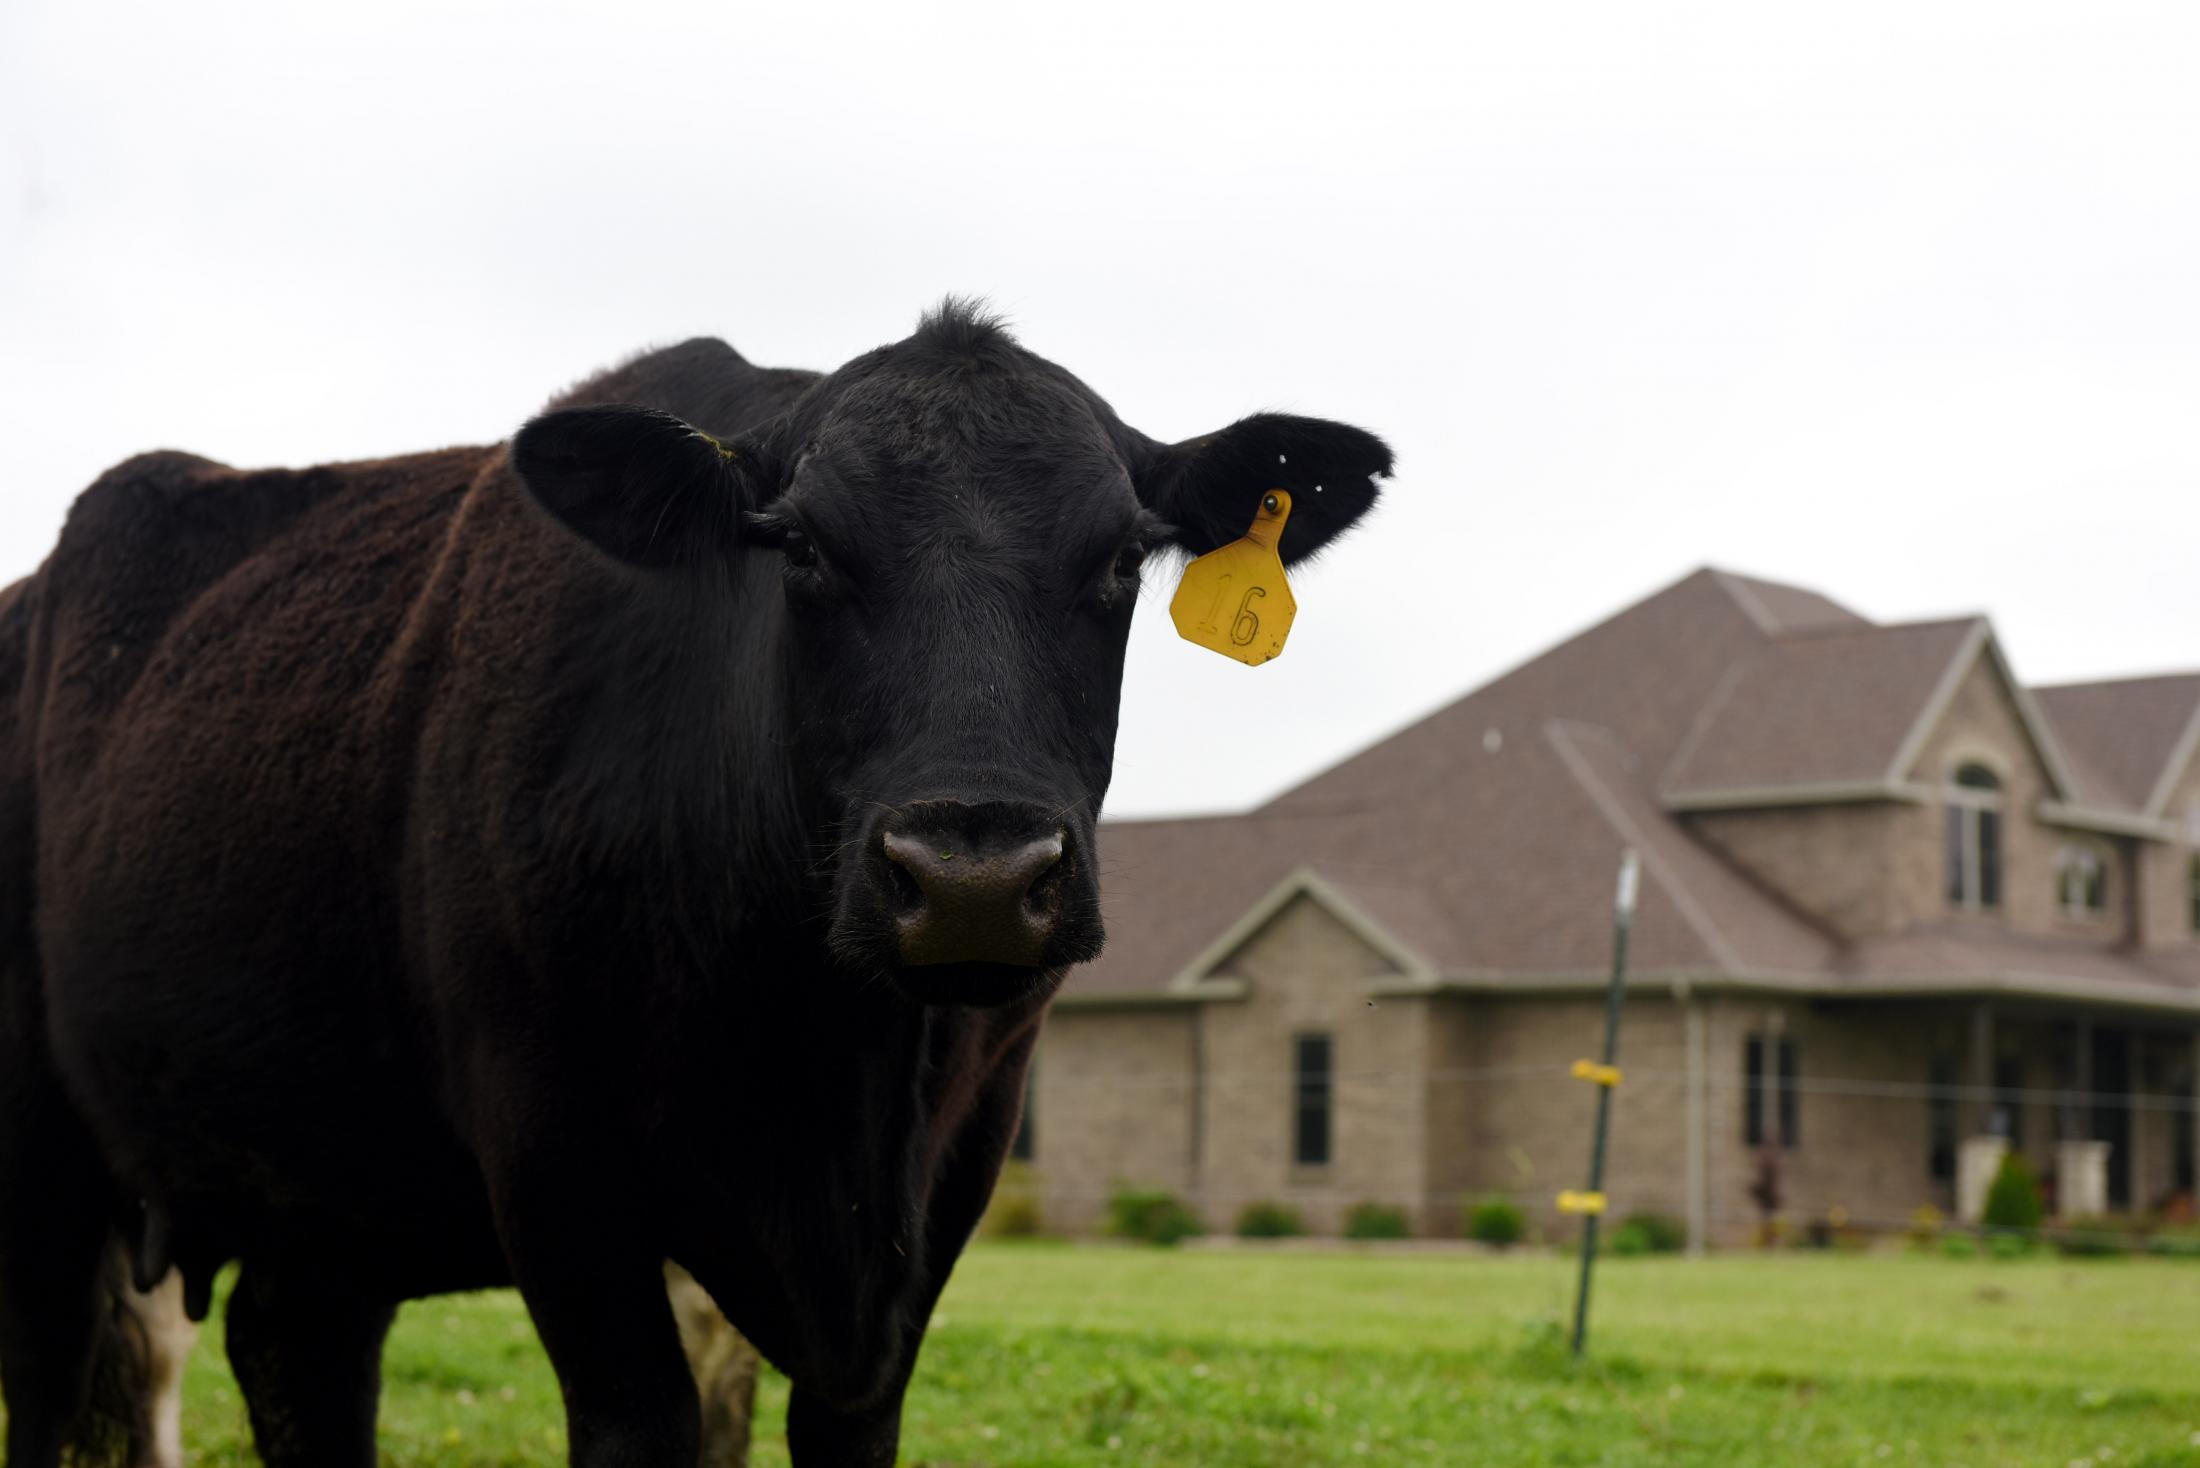 A cow stands in front of the Williams family house on May 19 in Clarksburg. The family built their house about three years ago on the land that has been in their family for the past 70 years. They finished their house 14 months before the Tipton East CAFO announced construction plans.